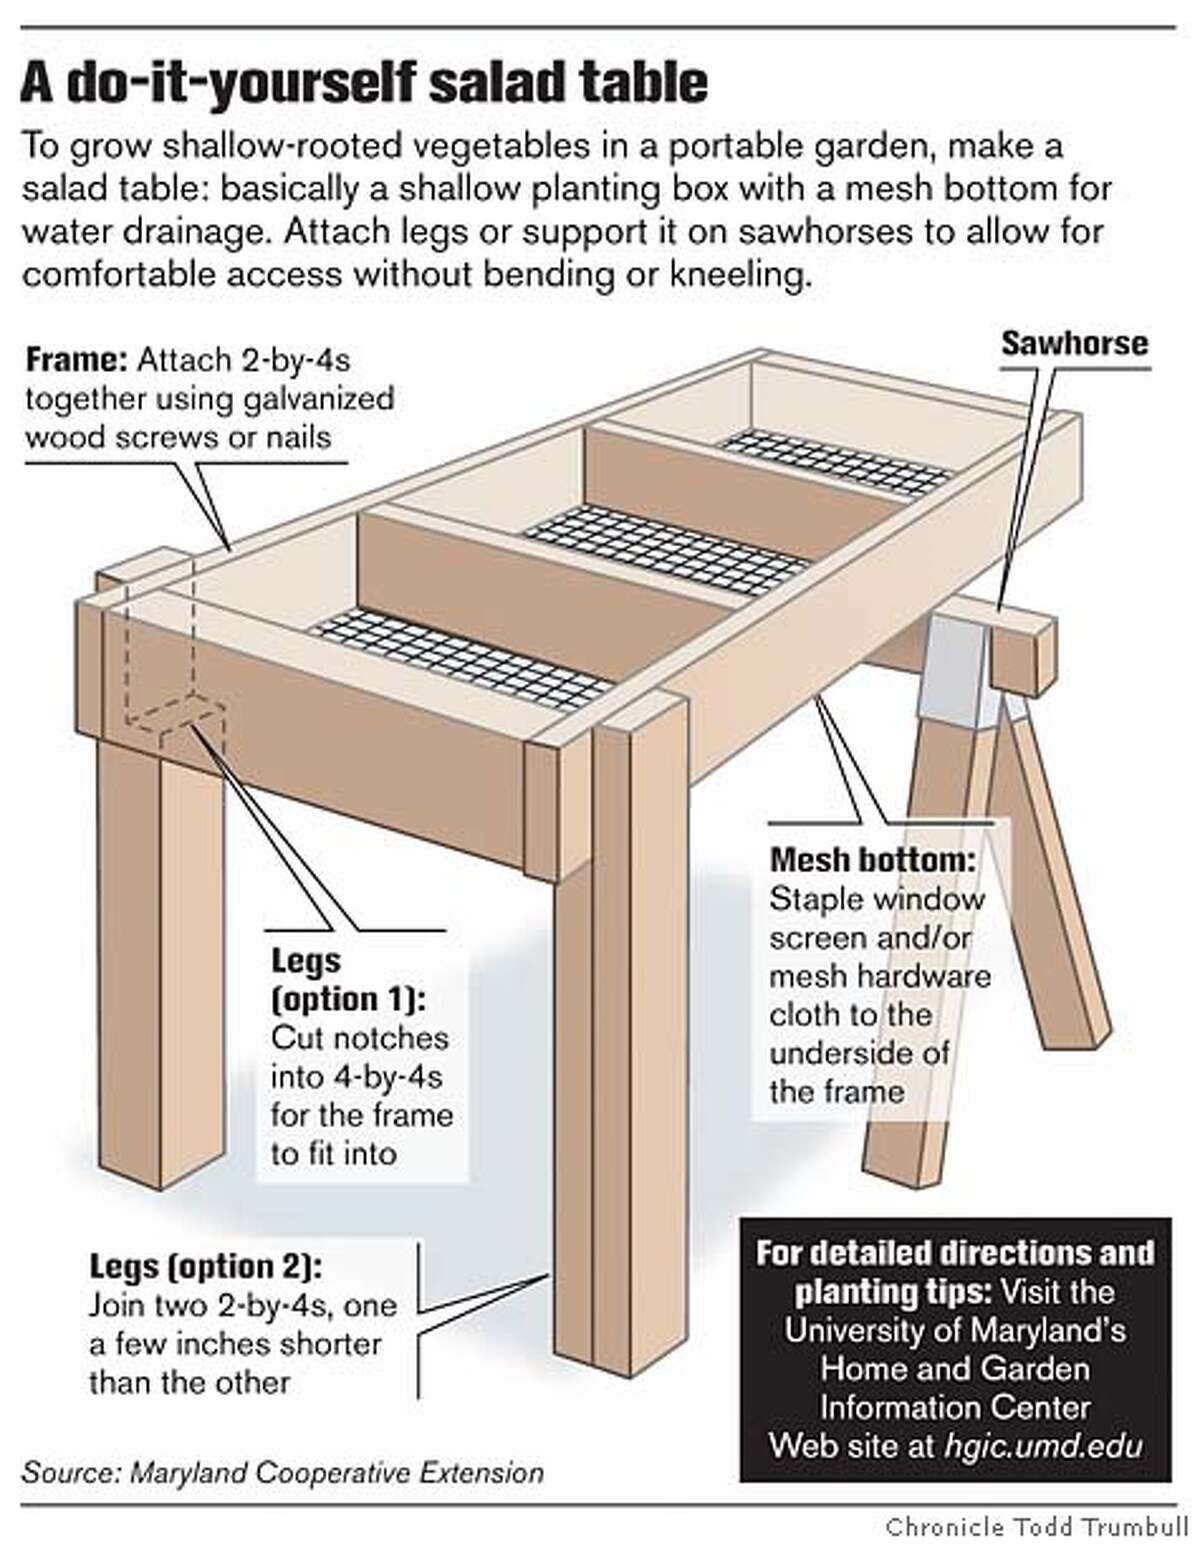 A do-it-yourself salad table. Chronicle graphic by Todd Trumbull